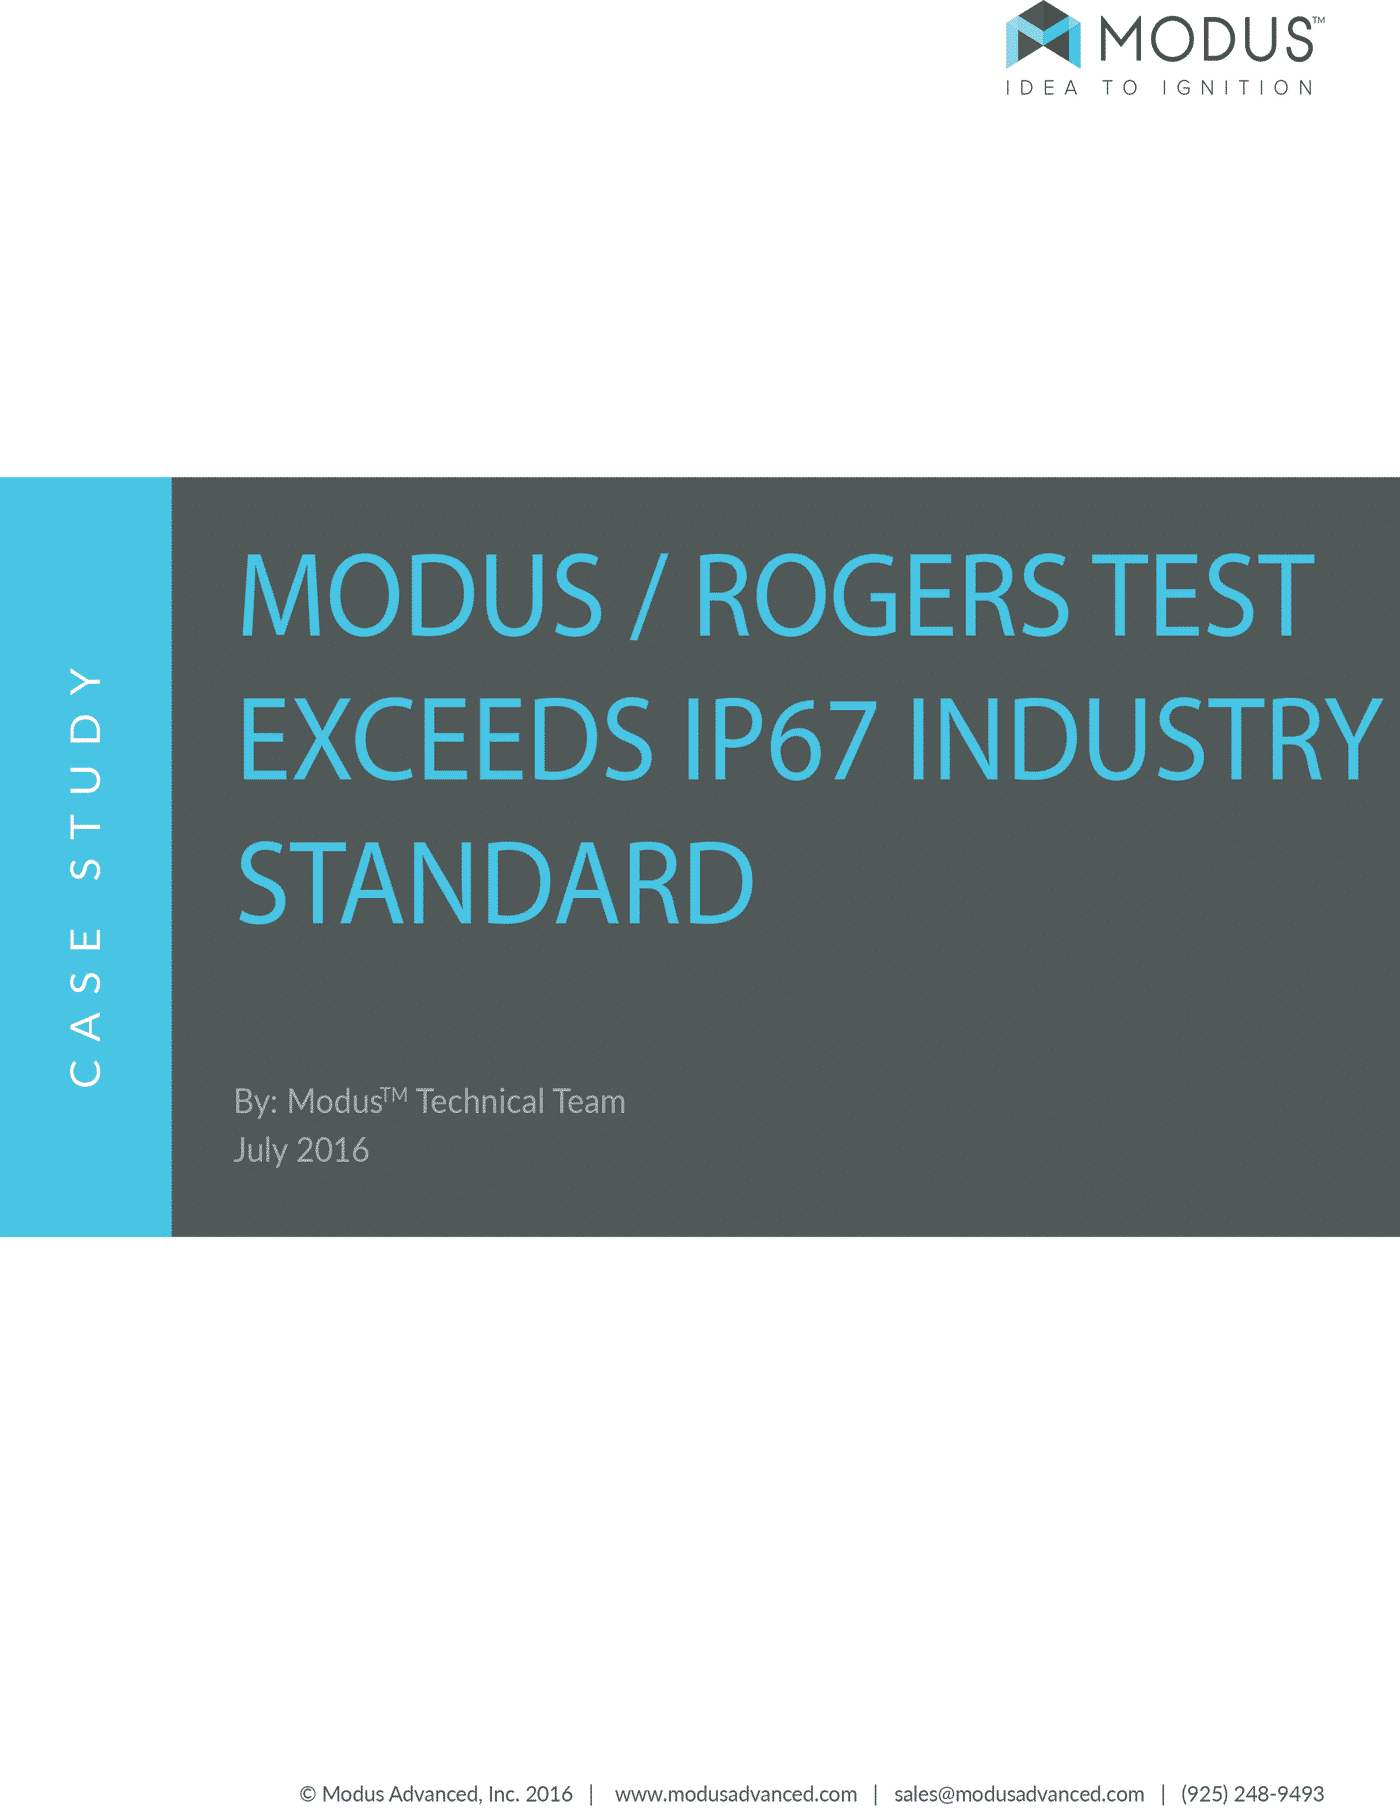 rogers-test-exceeds-ip67-industry-standard